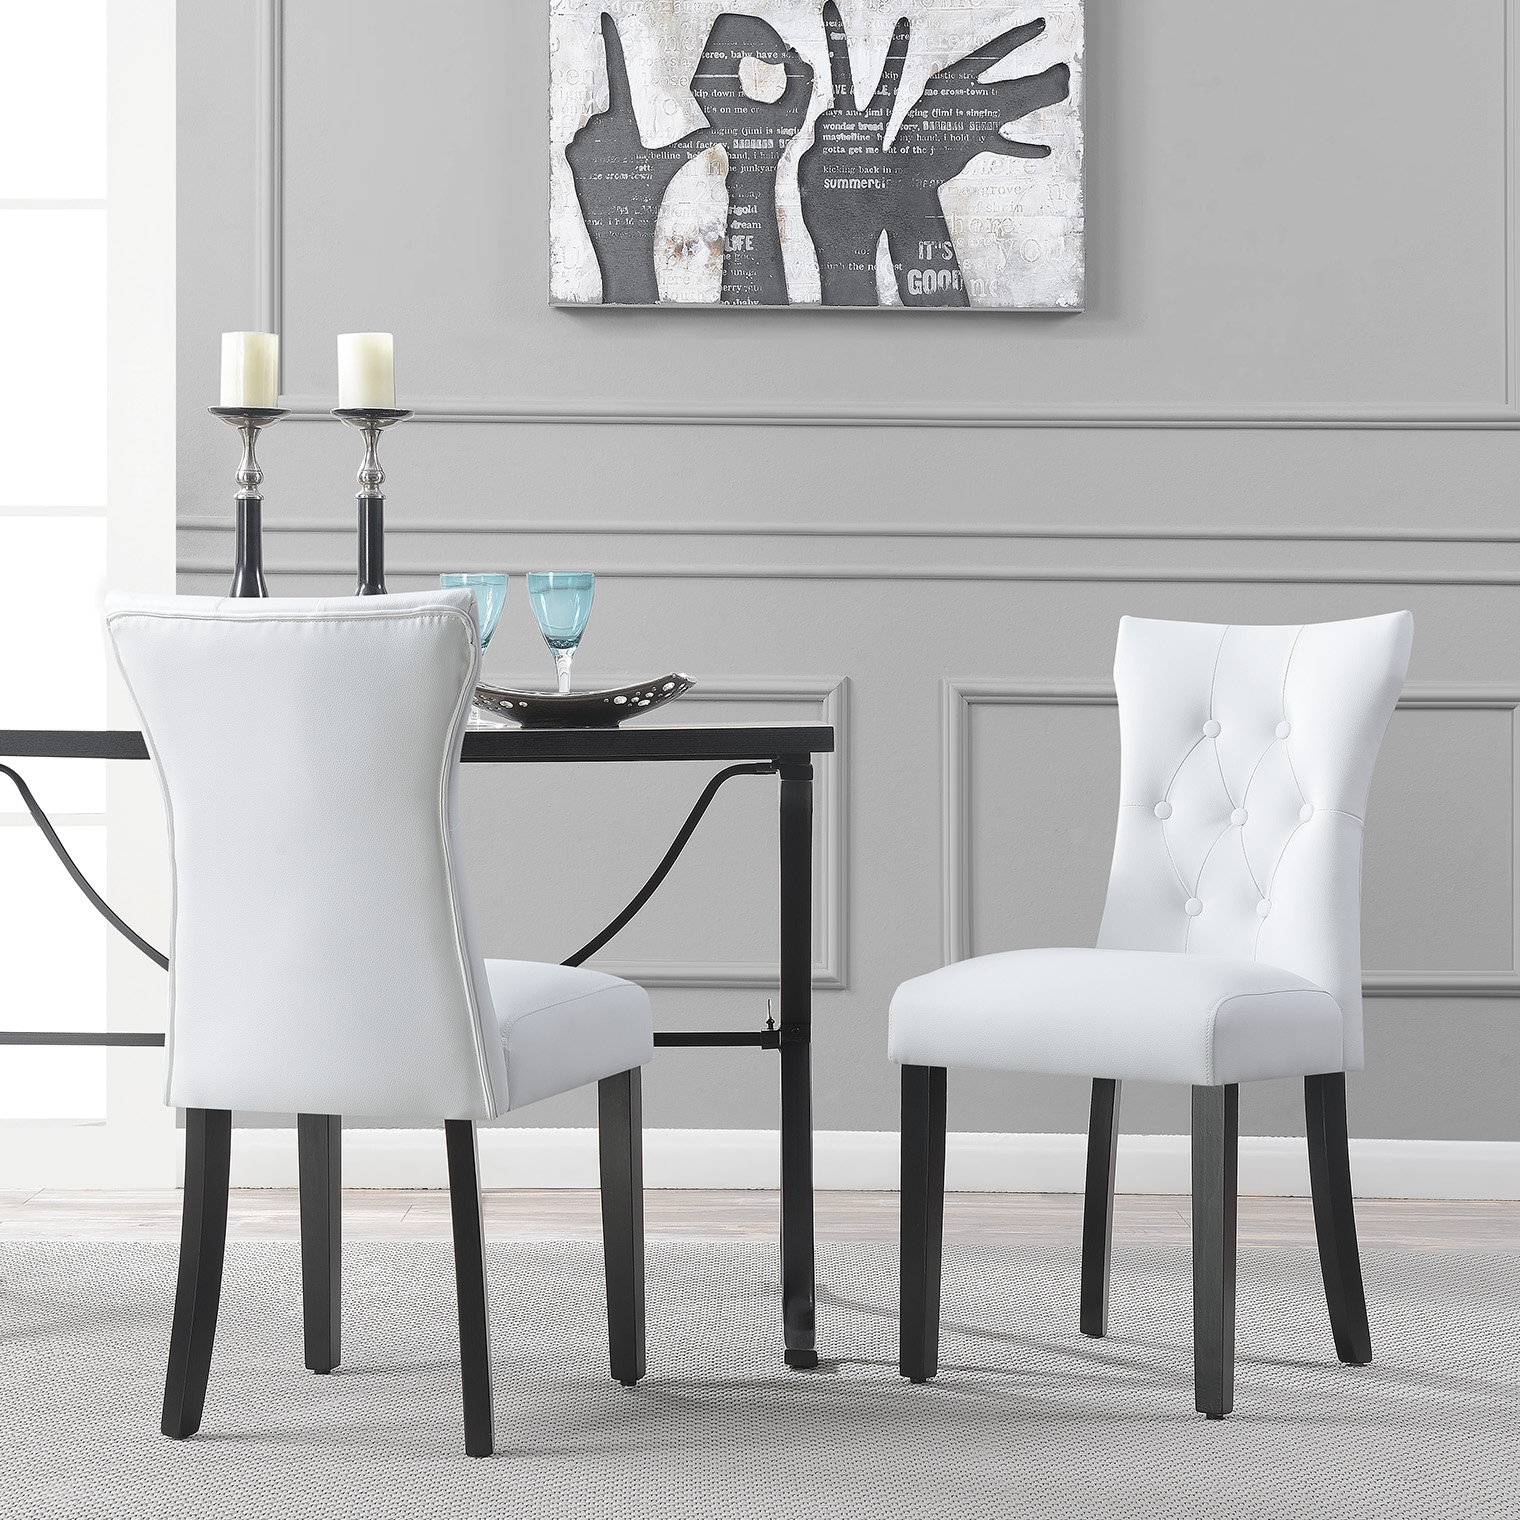 White Dining Chairs Details About Modern Leather Tufted Back Elegant White Dining Chair Nailhead Accent Set Of 2